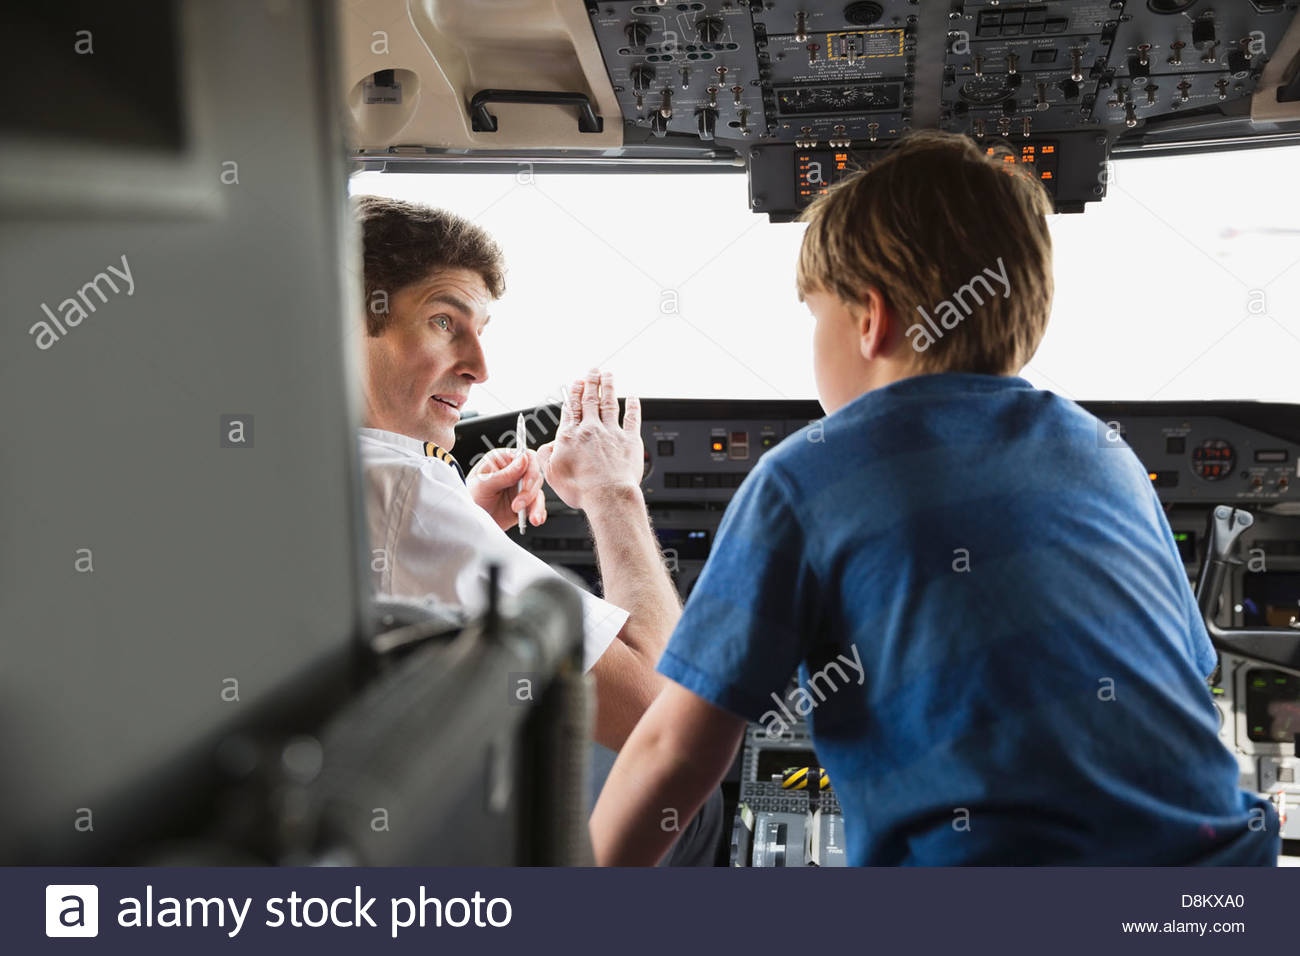 Male pilot explaining control panel to boy in airplane cockpit Stock Photo